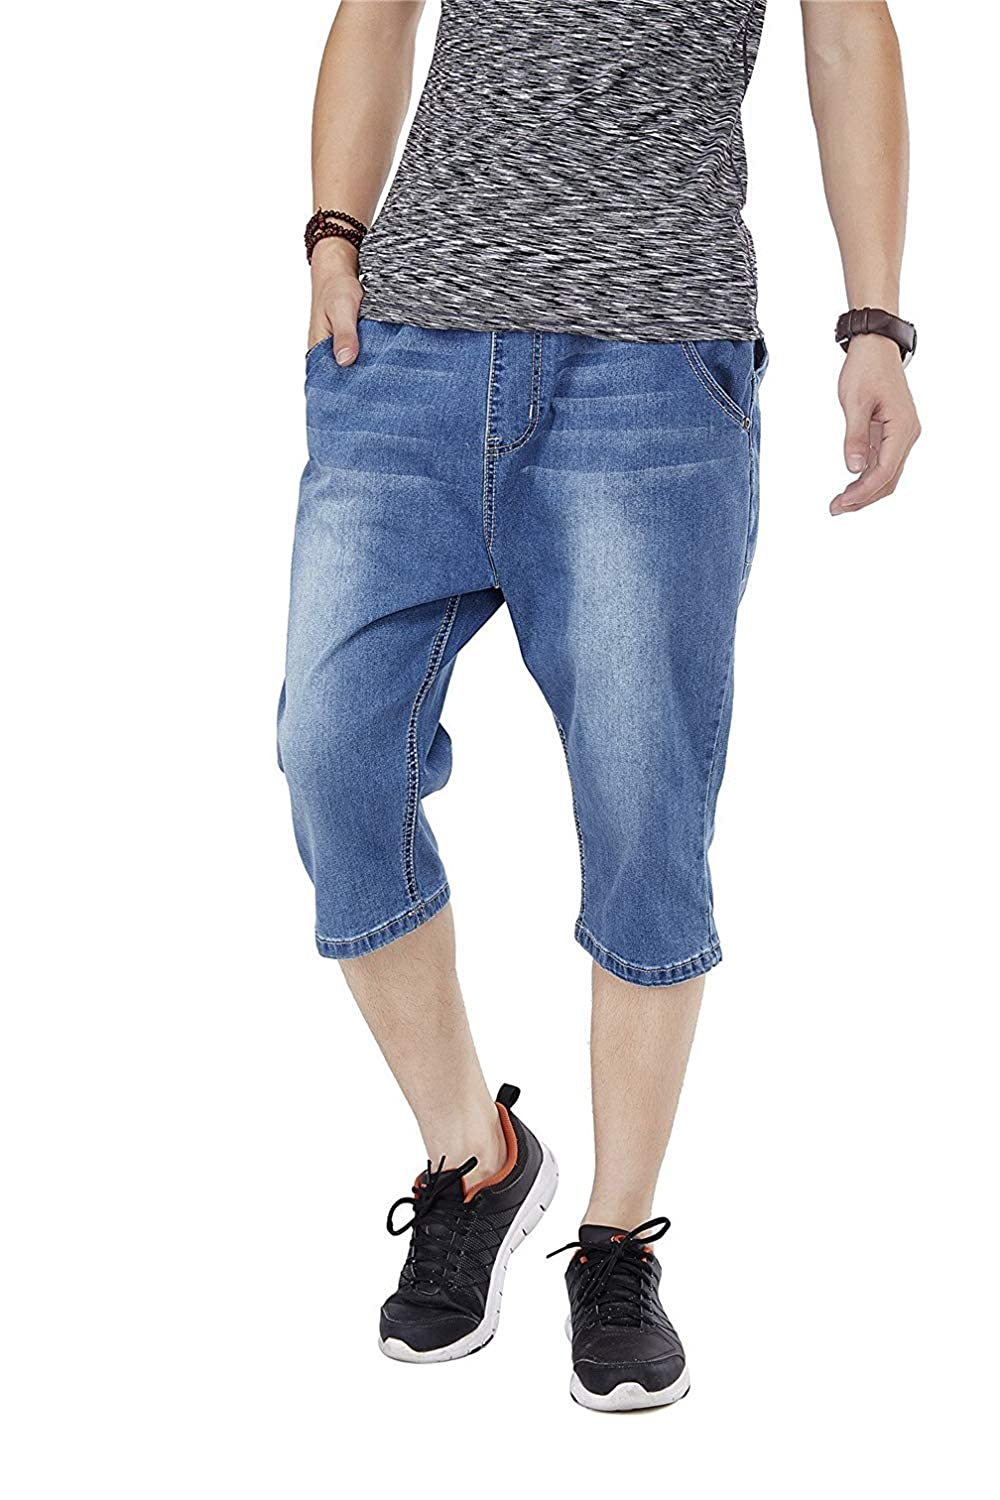 Hanglin Trade Mens Hip-Hop Wash Denim Pocket Short Baggy Pants Jeans